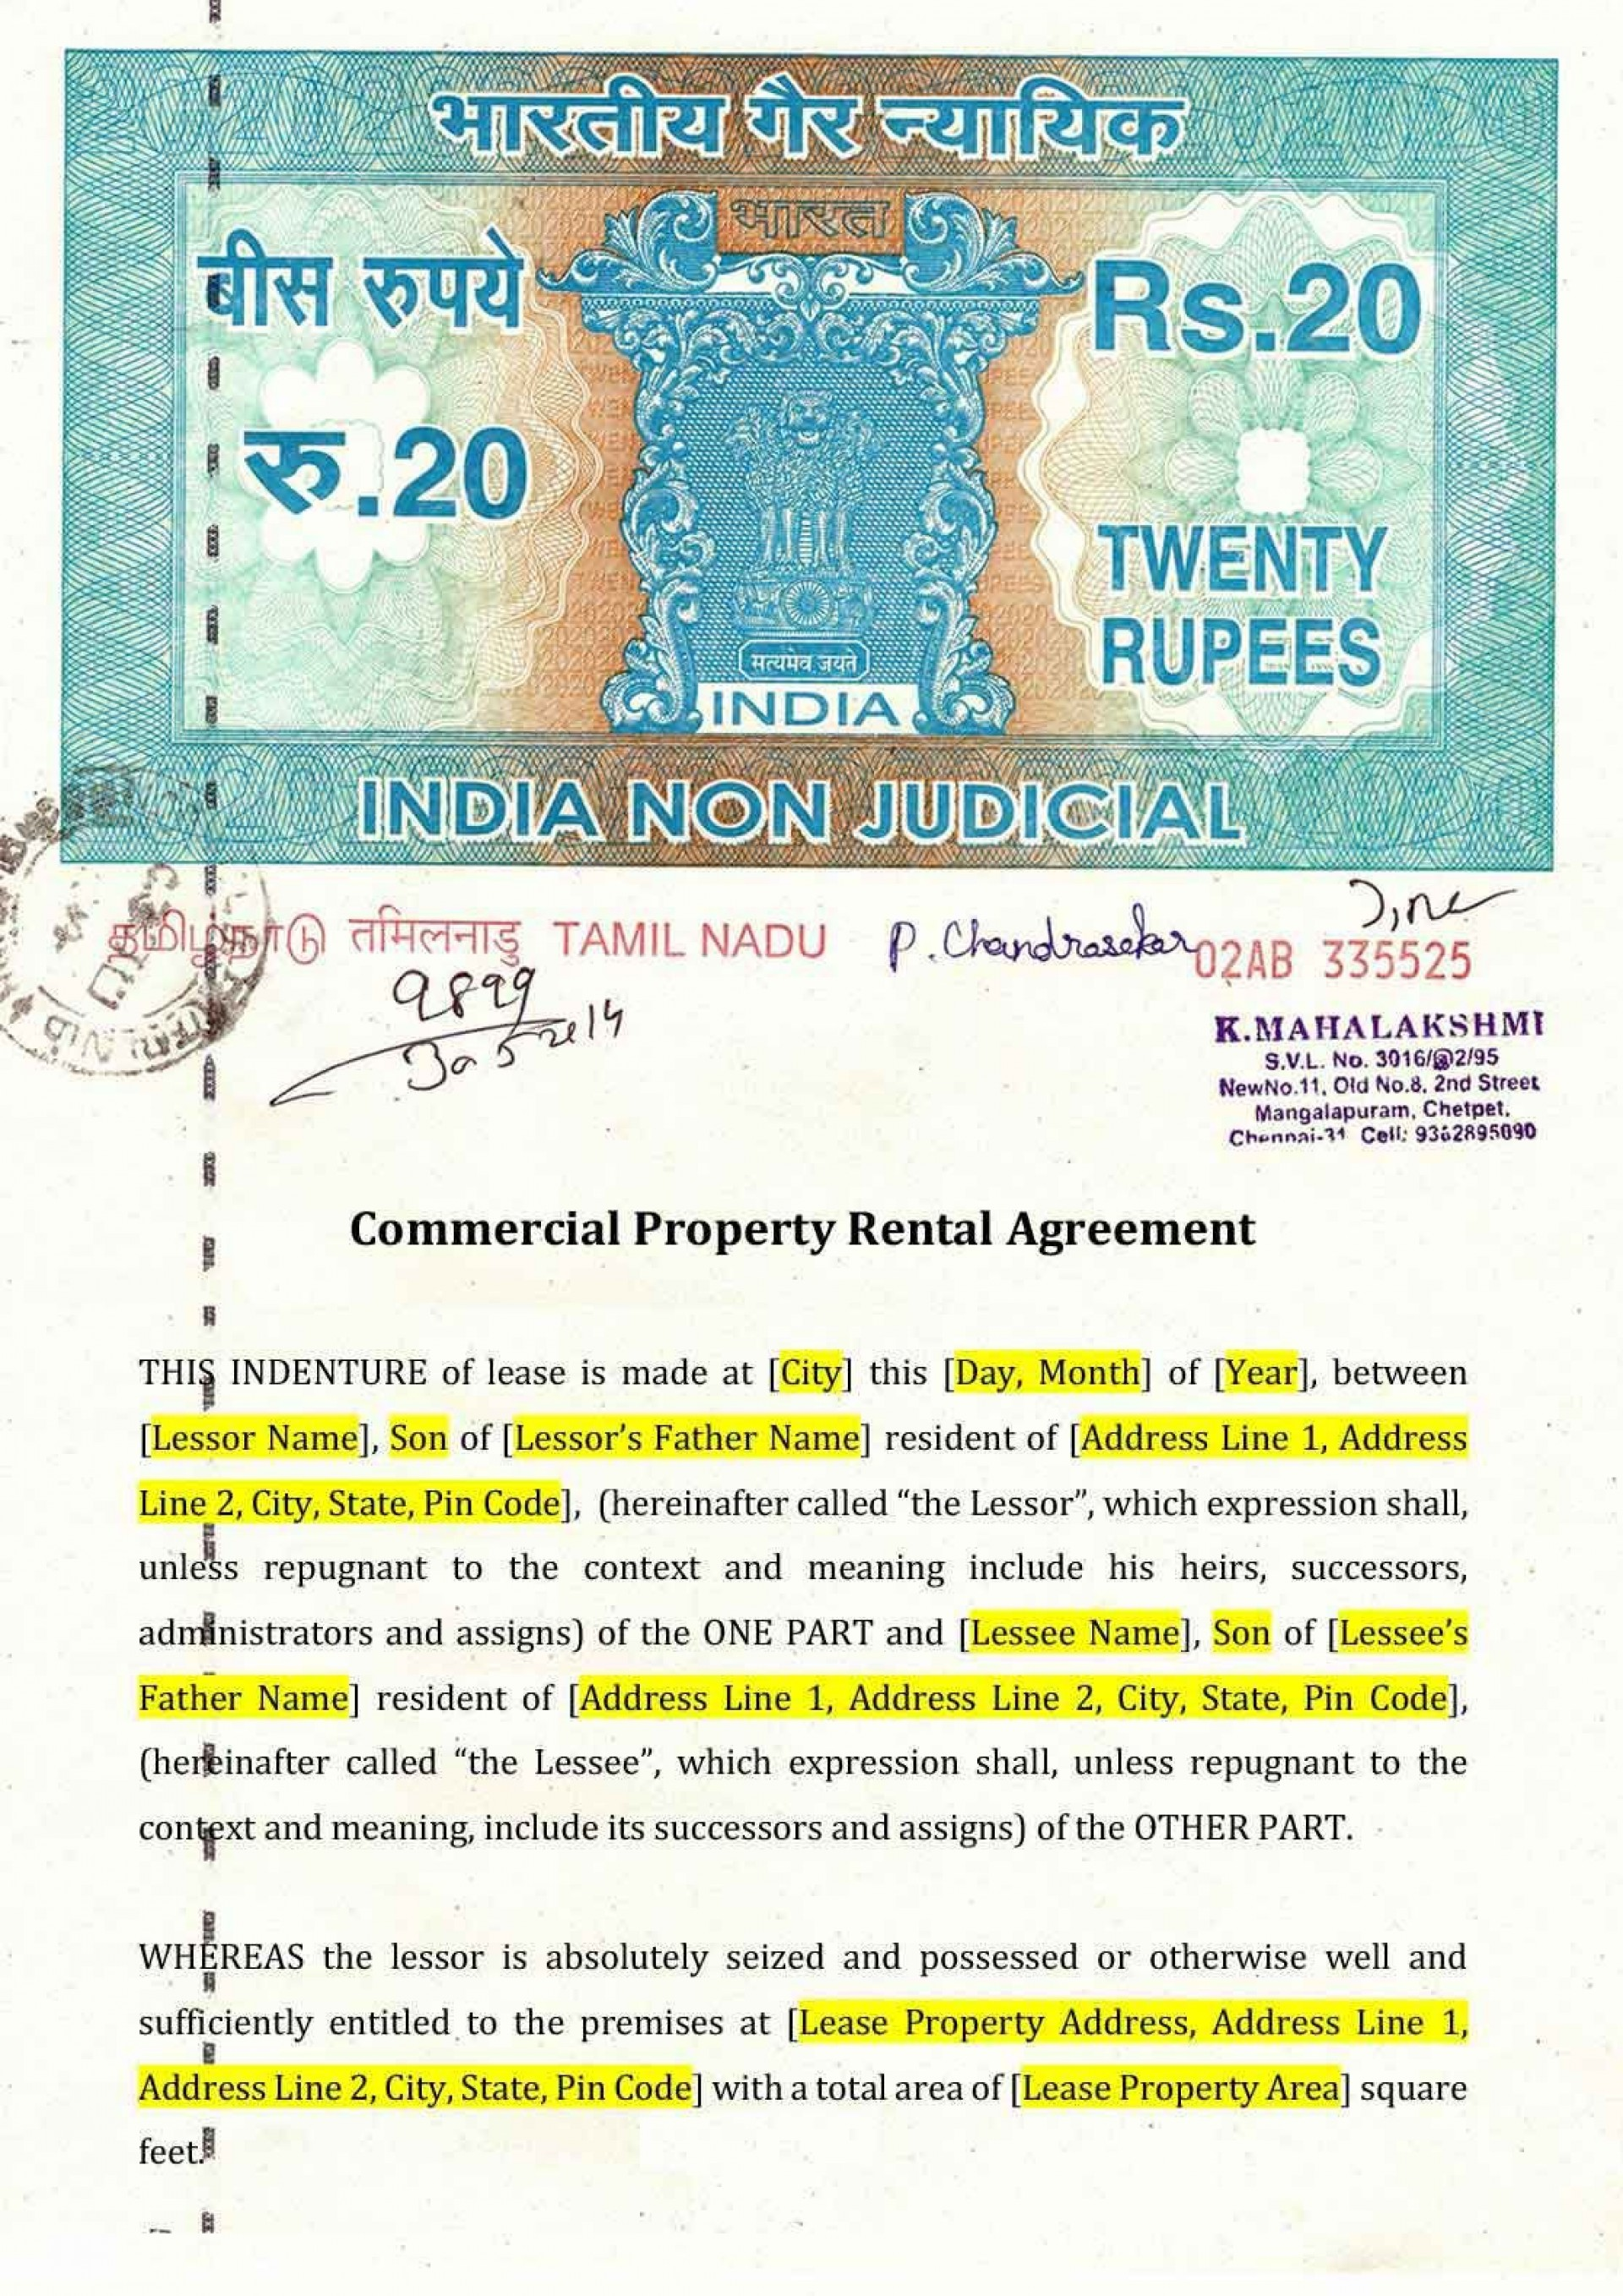 009 Formidable Lease Agreement Template Word India Inspiration  Rental1920